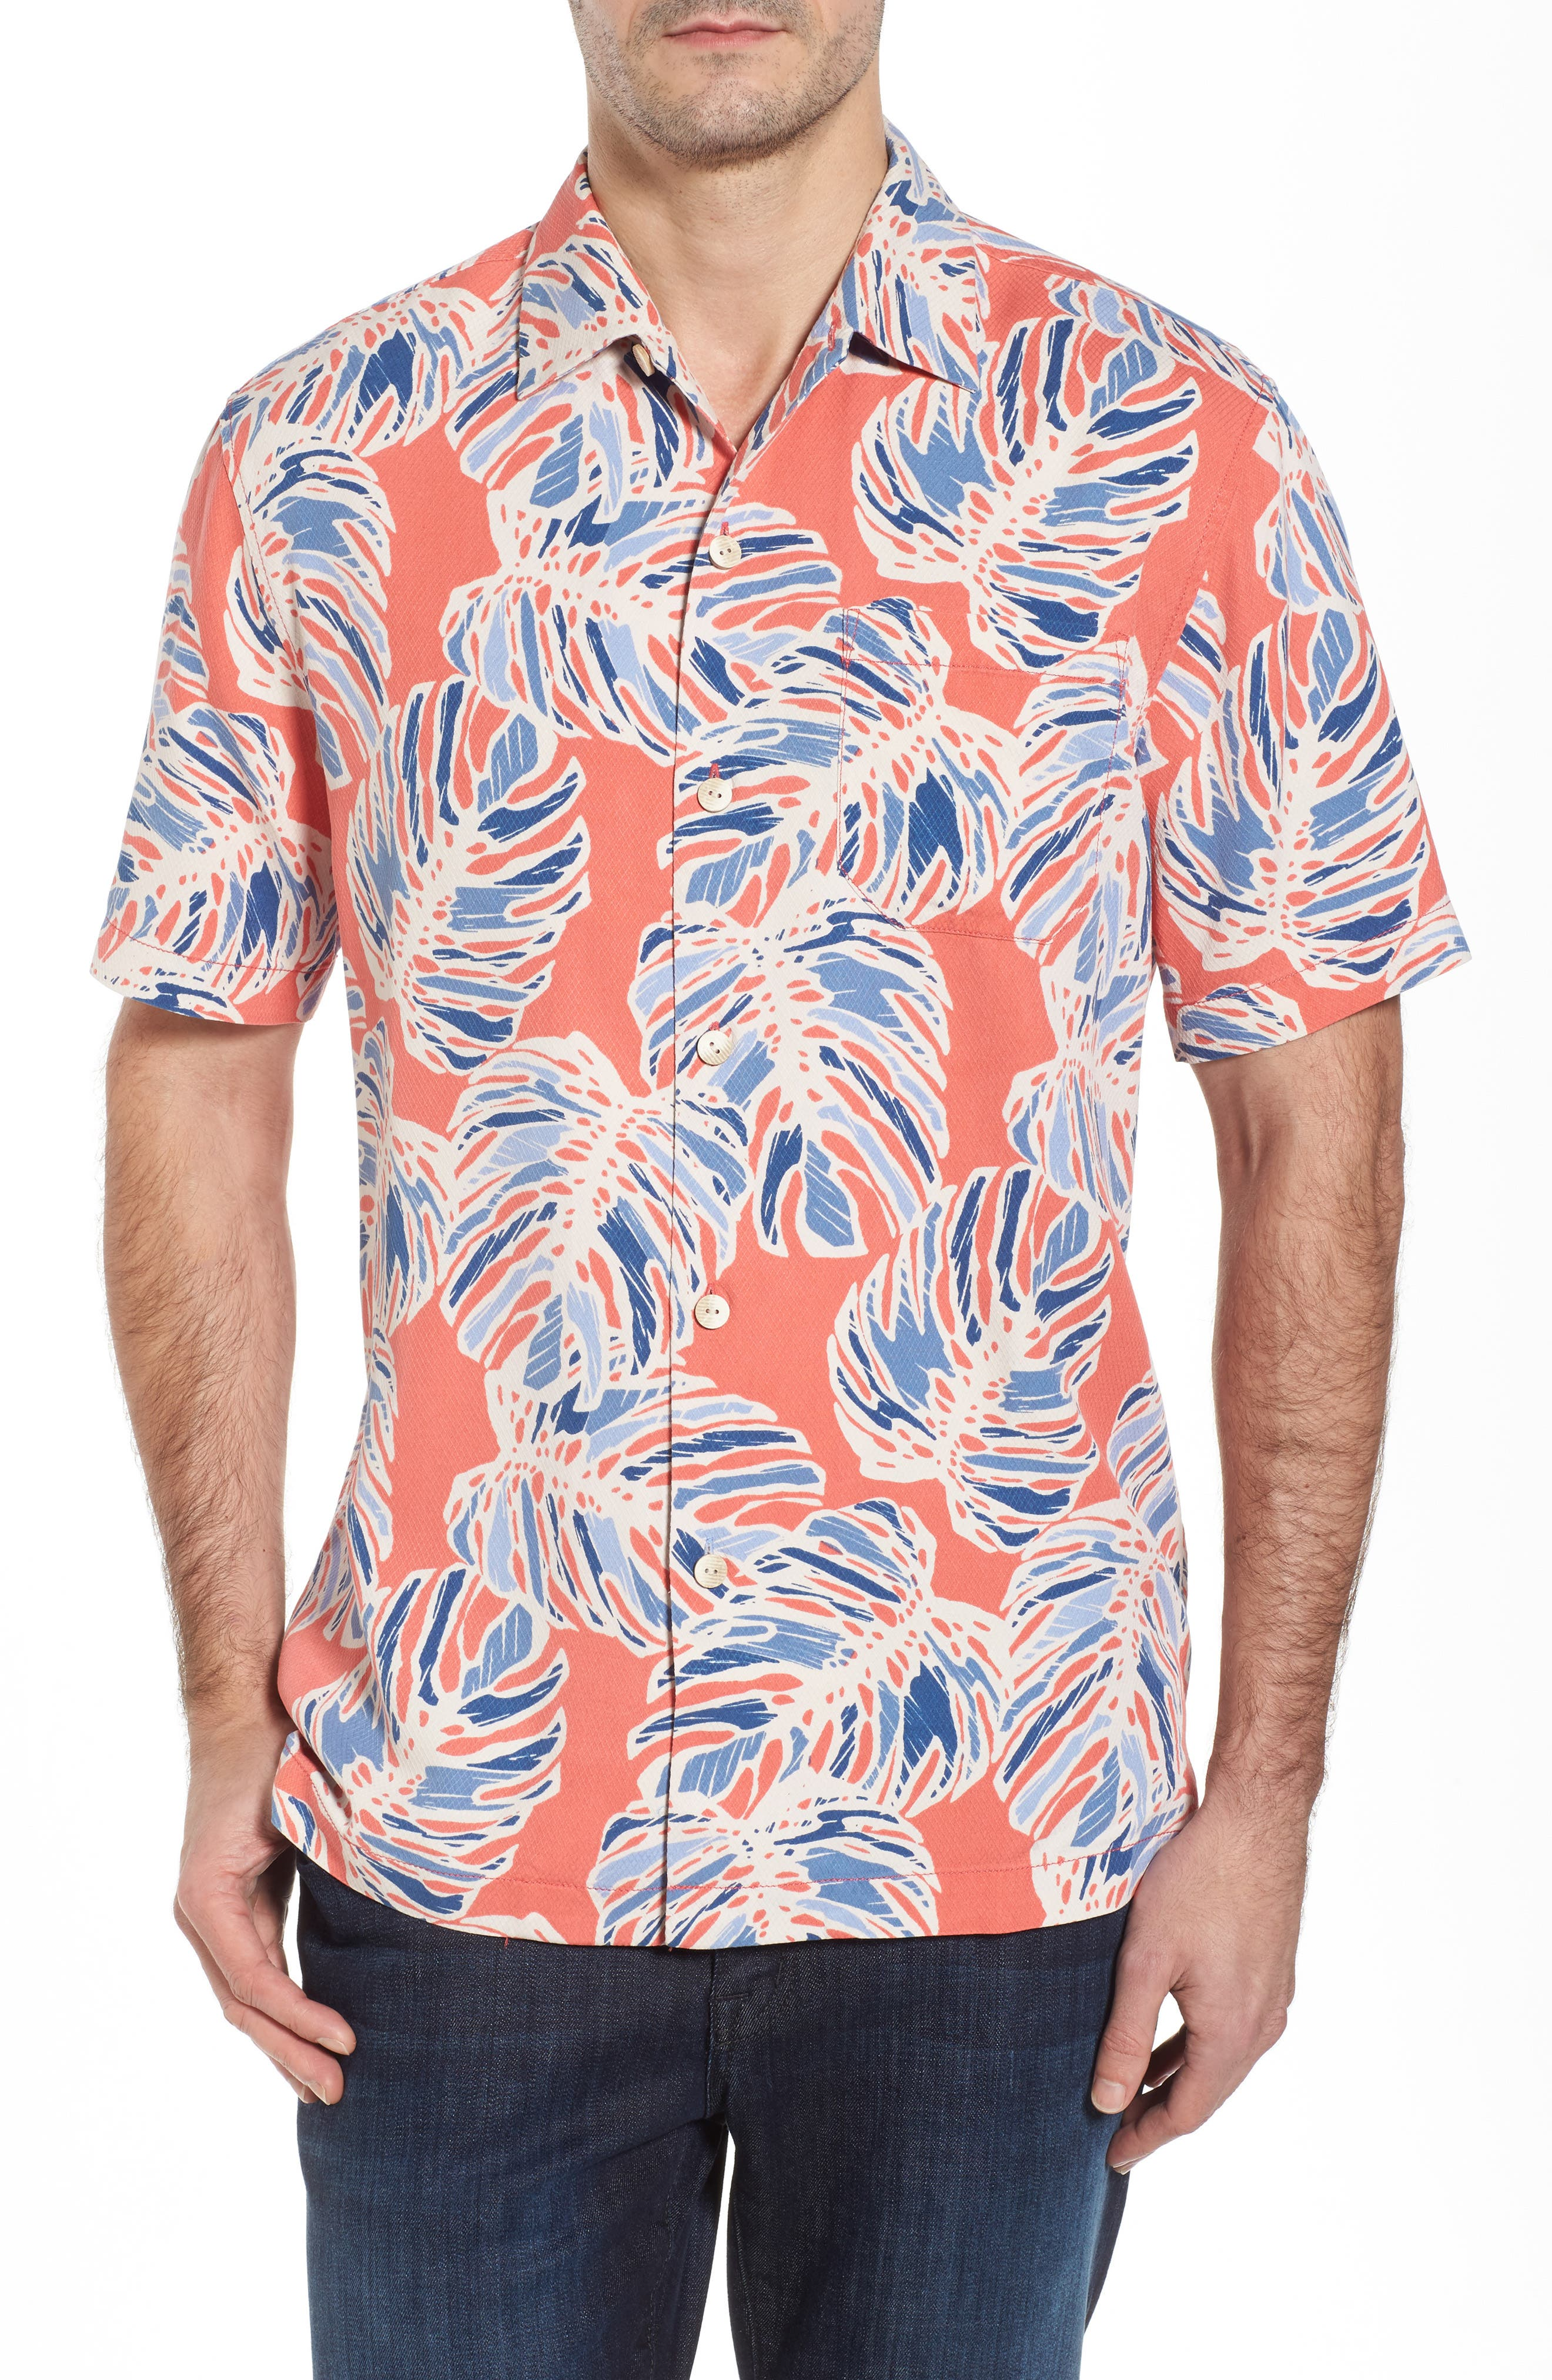 Leaf It to Chance Silk Camp Shirt,                             Main thumbnail 1, color,